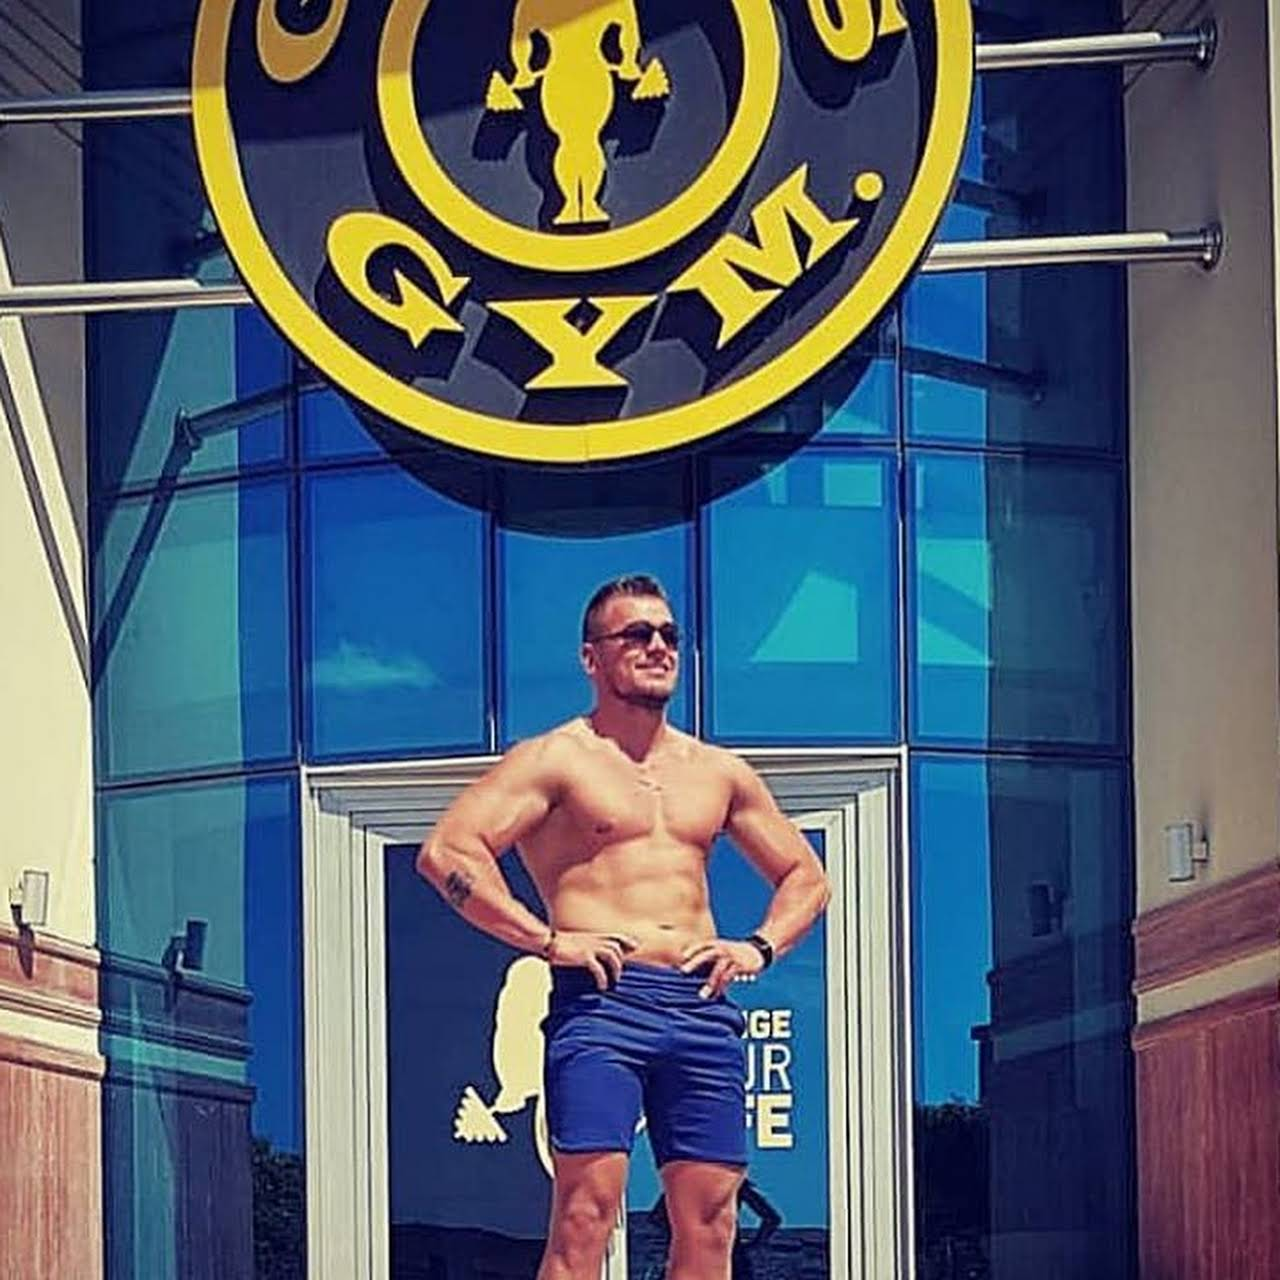 Gold's Gym - Hurghada - Your Fitness Destination